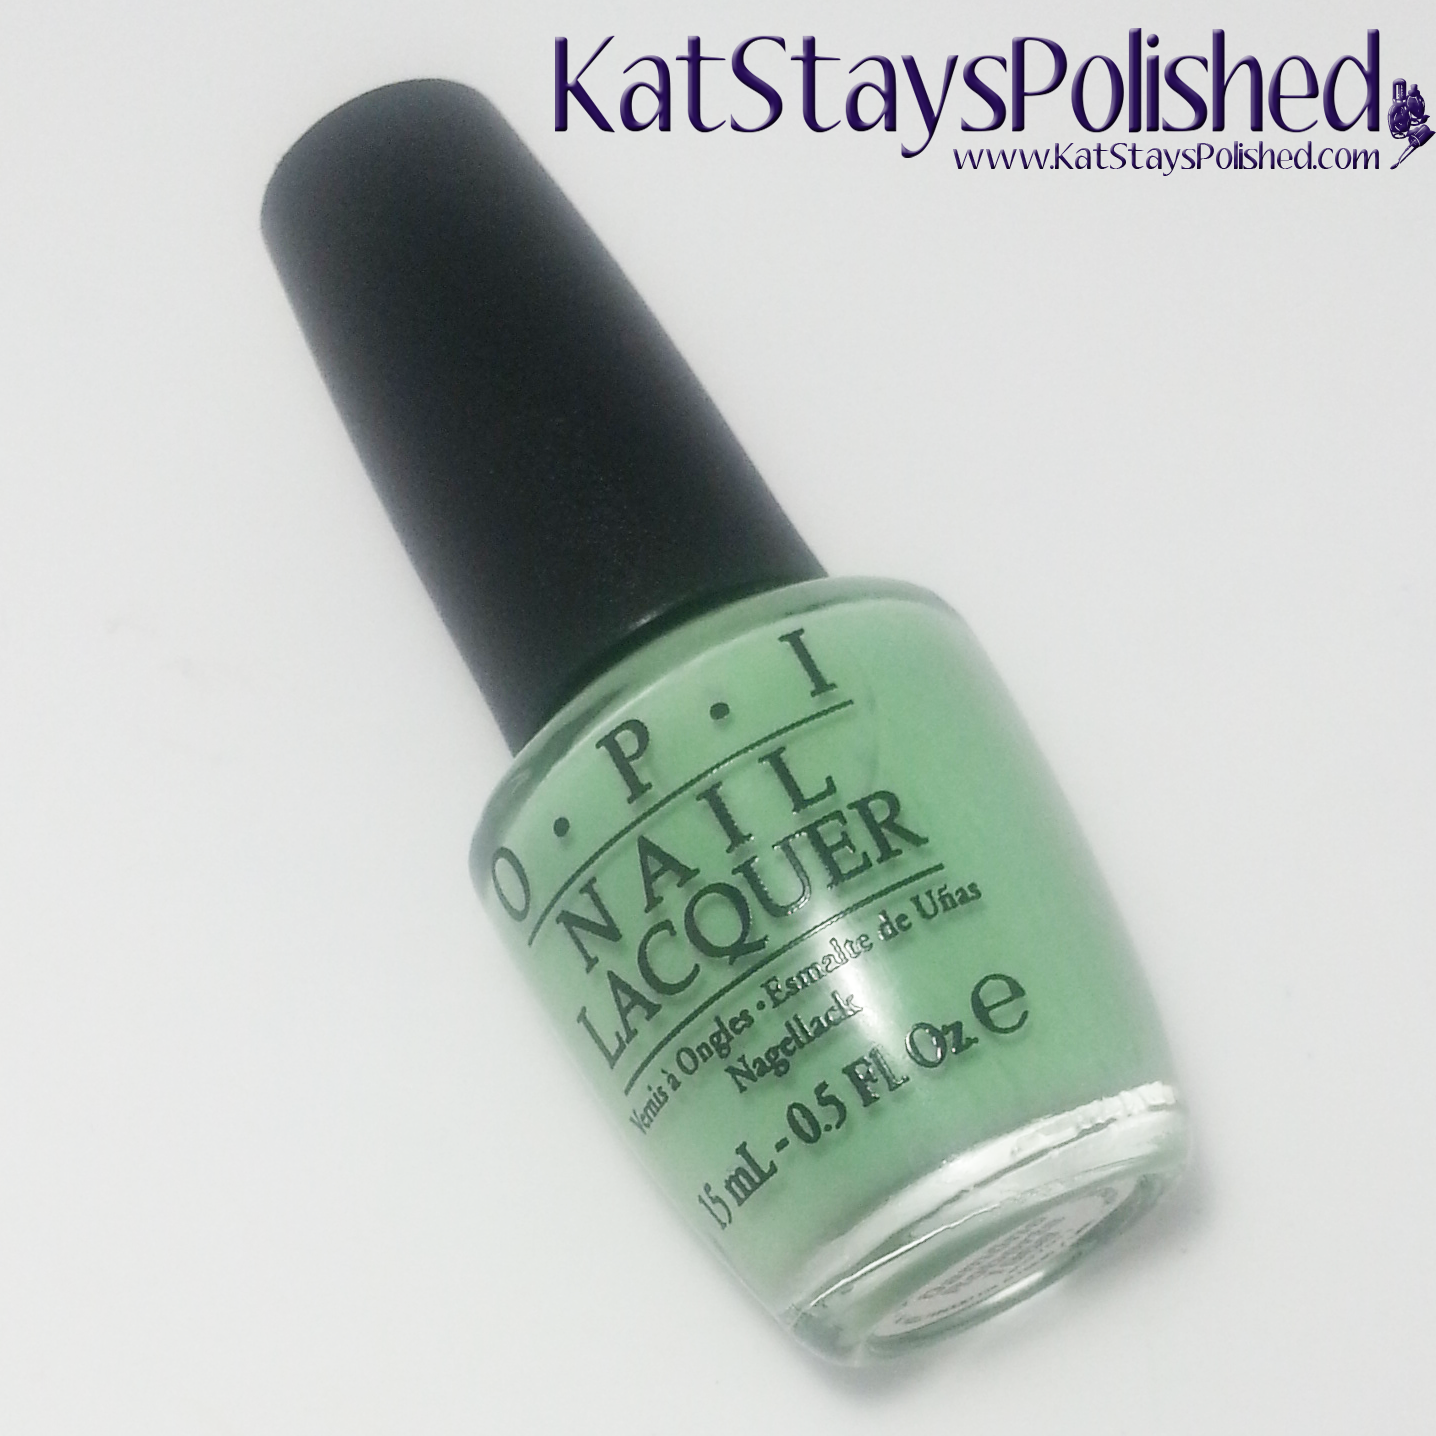 OPI Damone Roberts 1968 | Kat Stays Polished